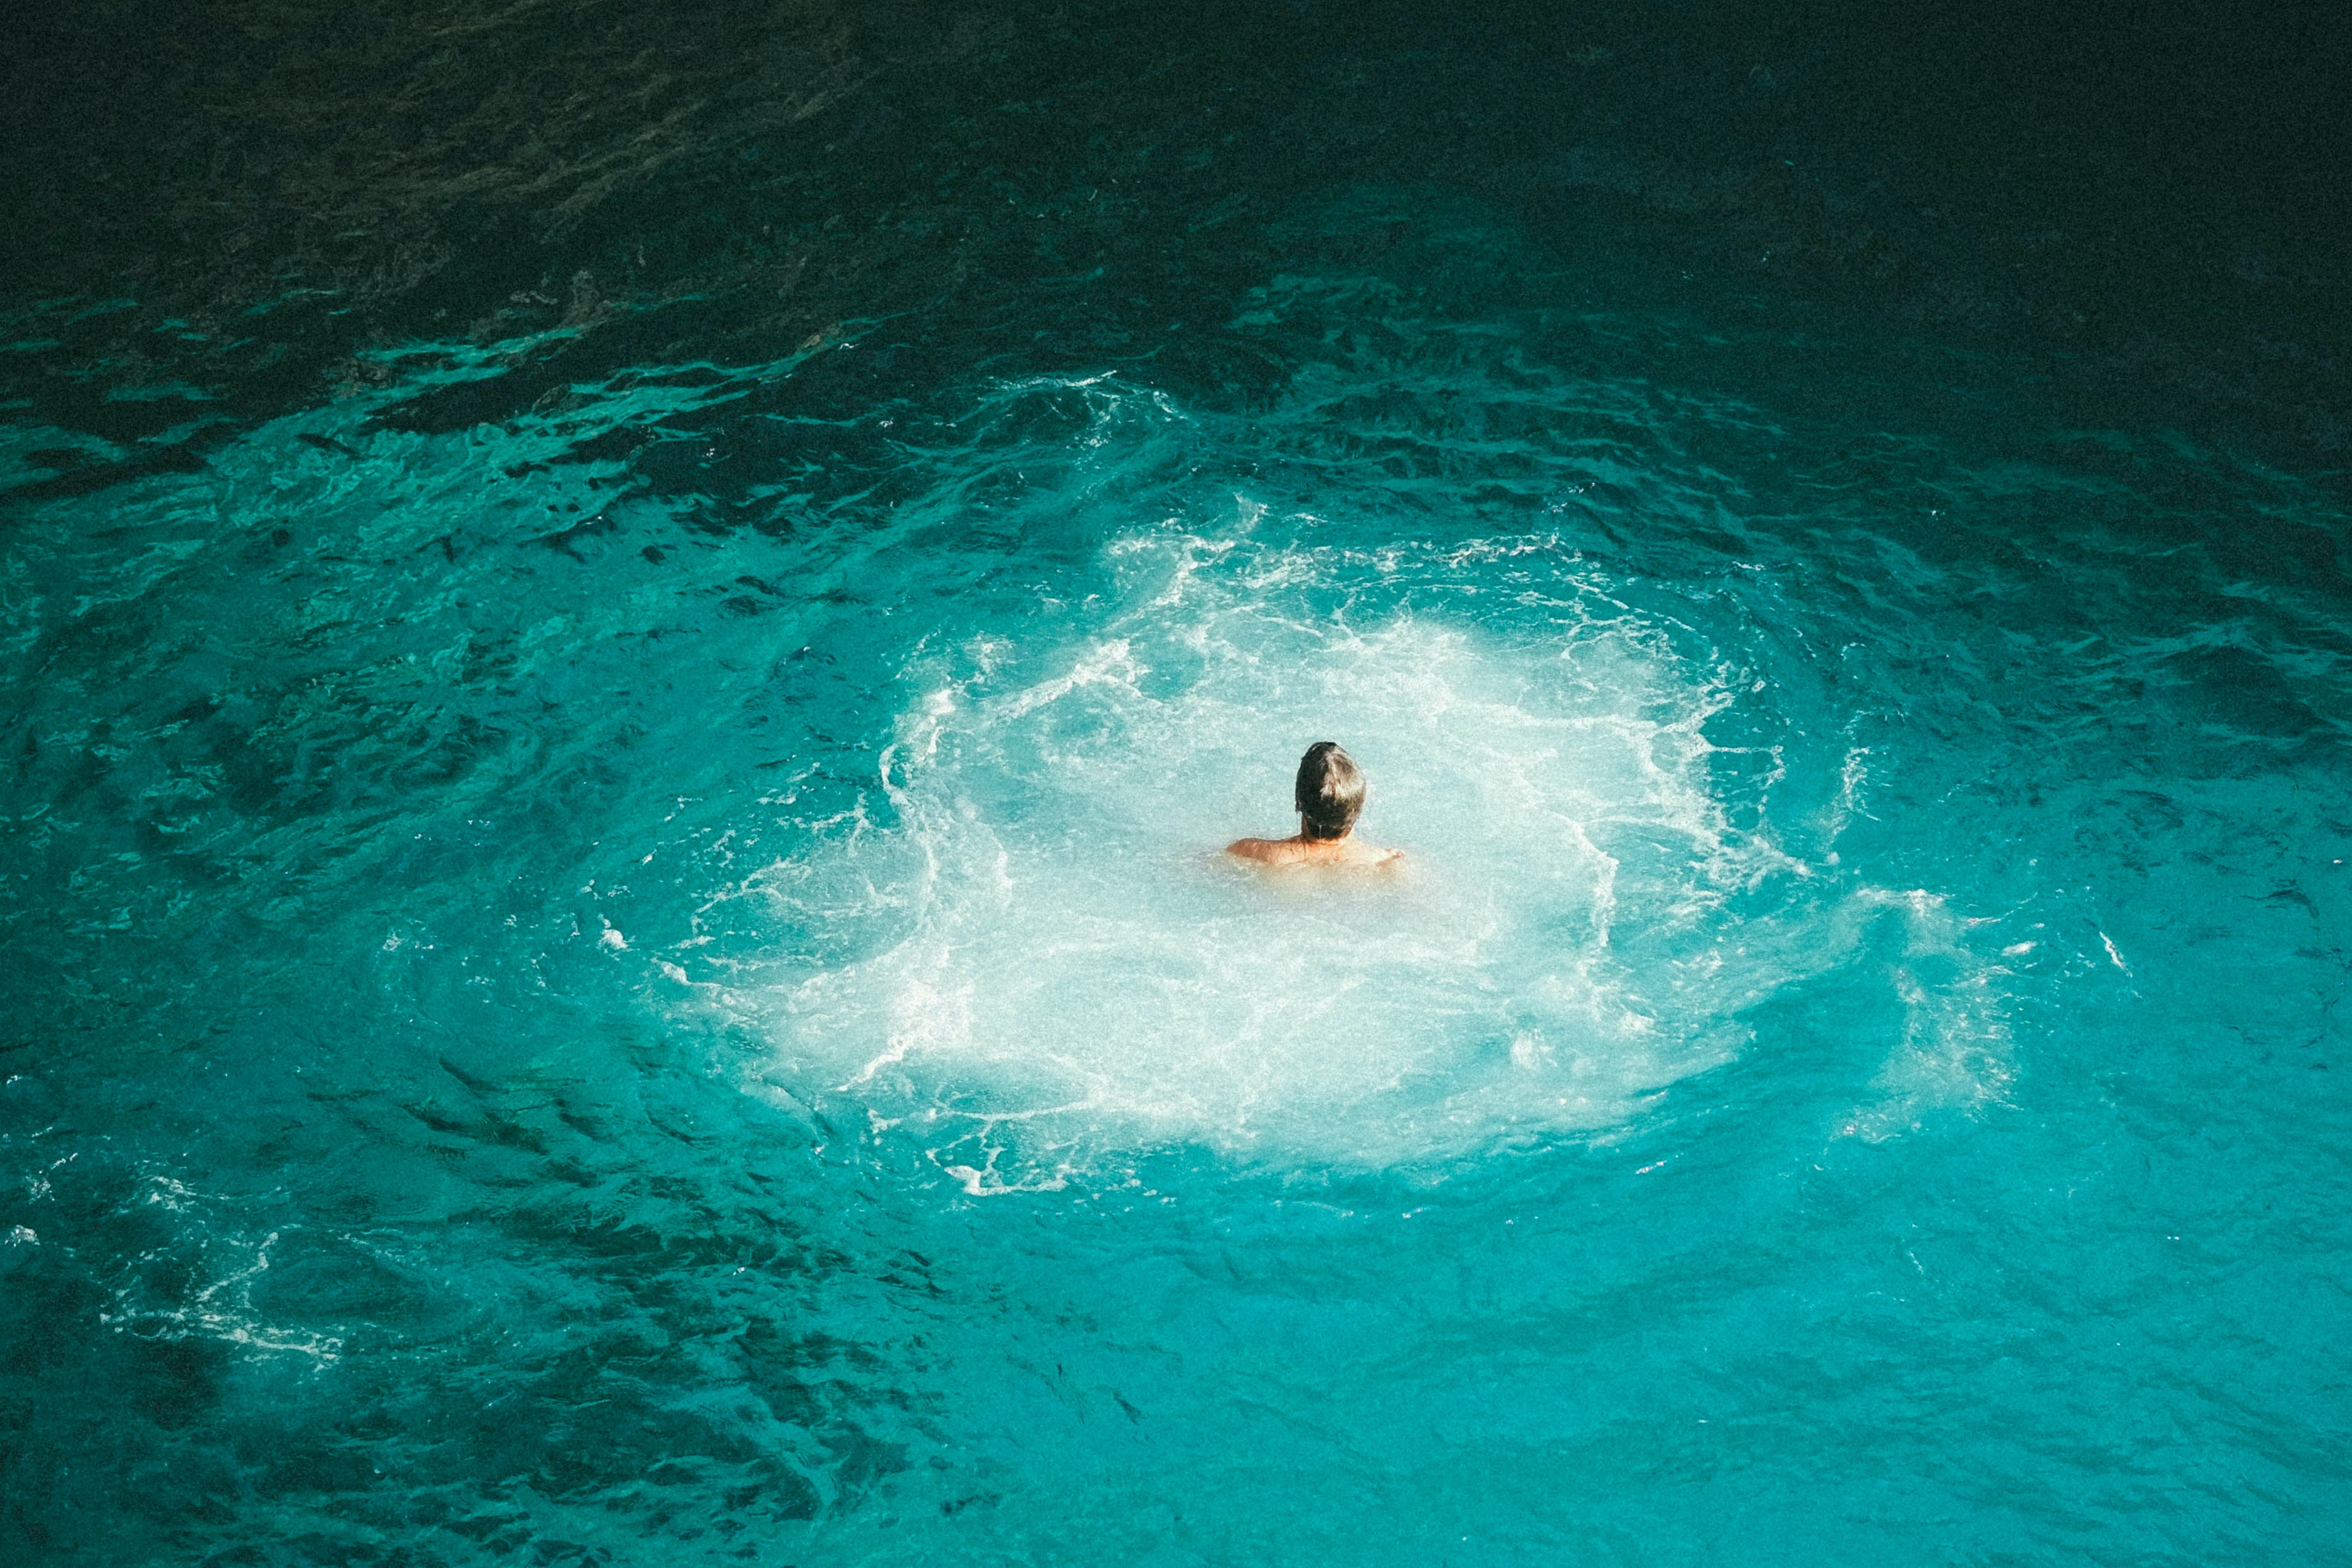 photo of person swimming on body of water